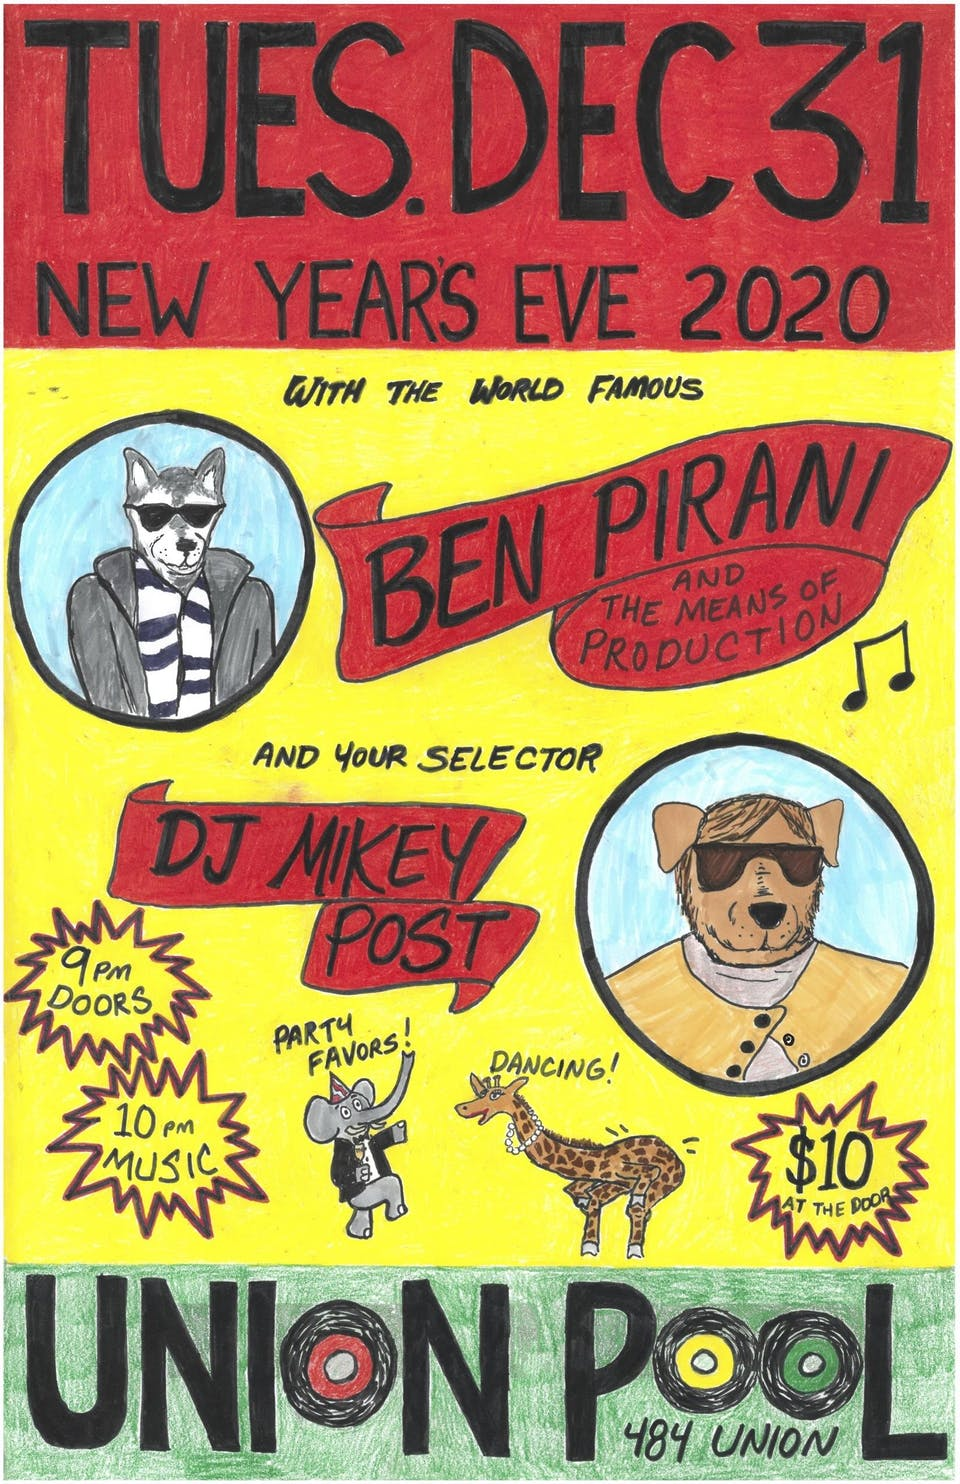 NYE! w/ Ben Pirani & The Means of Production + DJ Mikey Post!